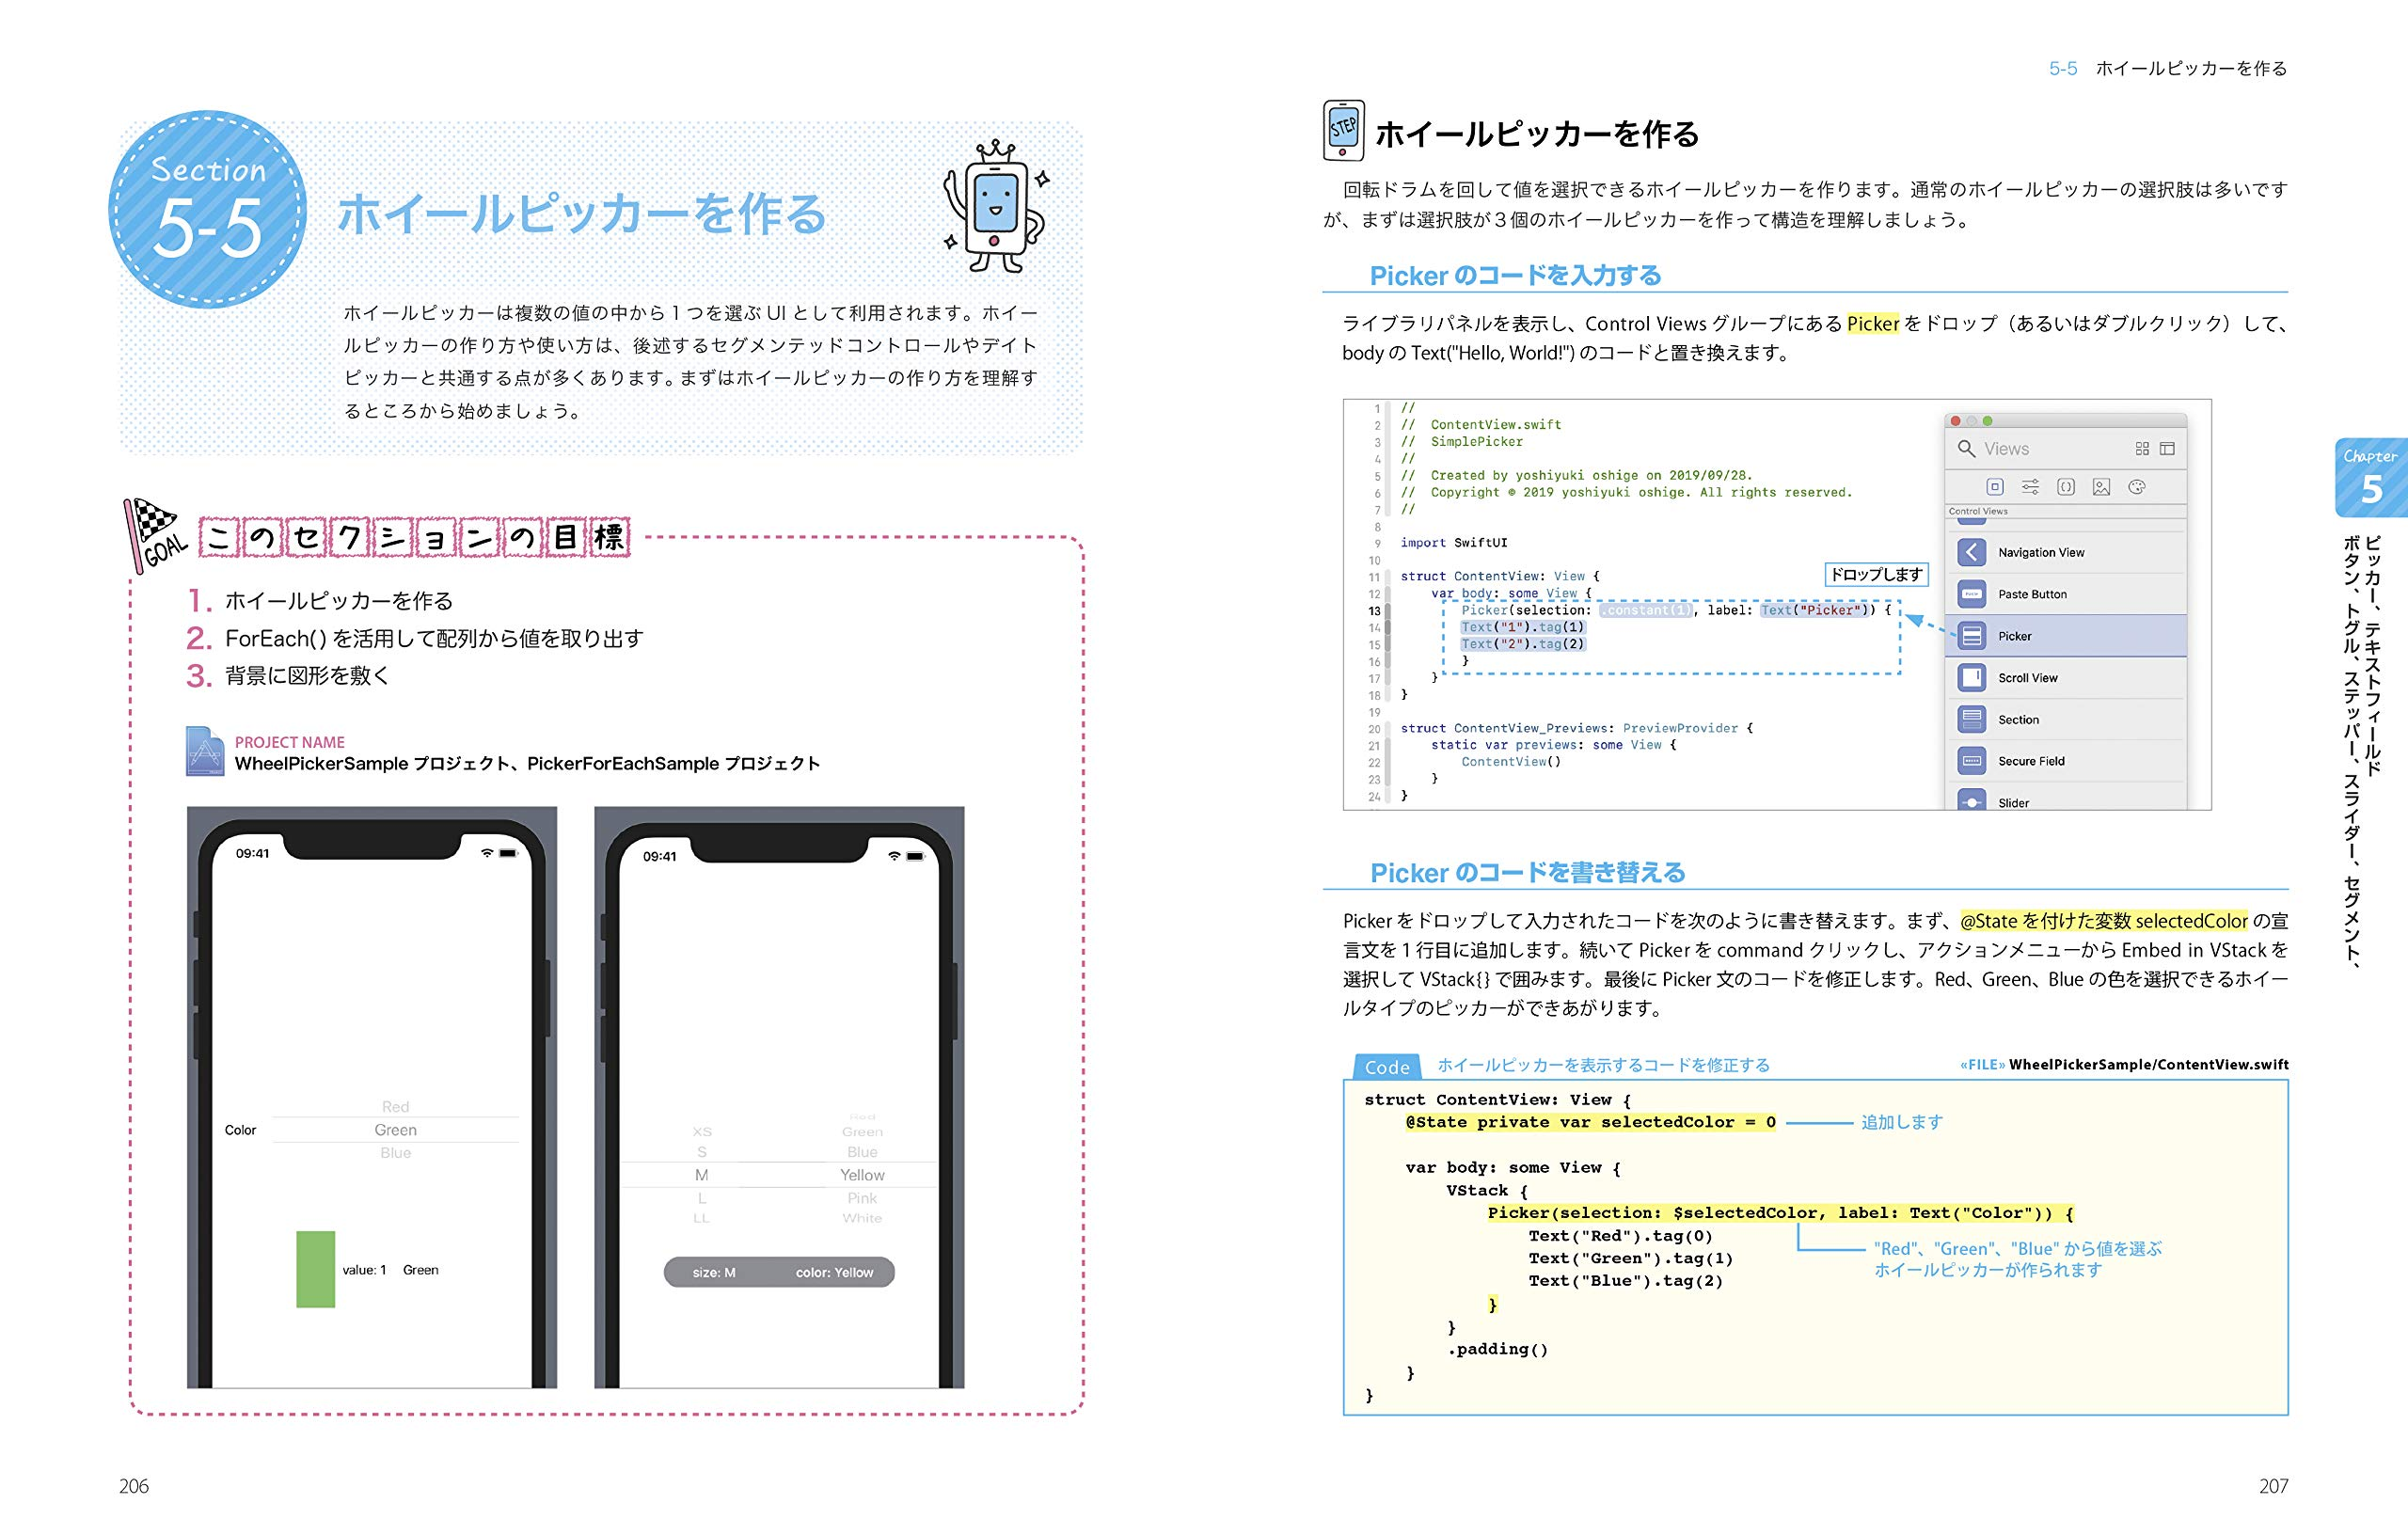 Thumbnail of 詳細! SwiftUI iPhoneアプリ開発入門ノート iOS 13 + Xcode11対応4$